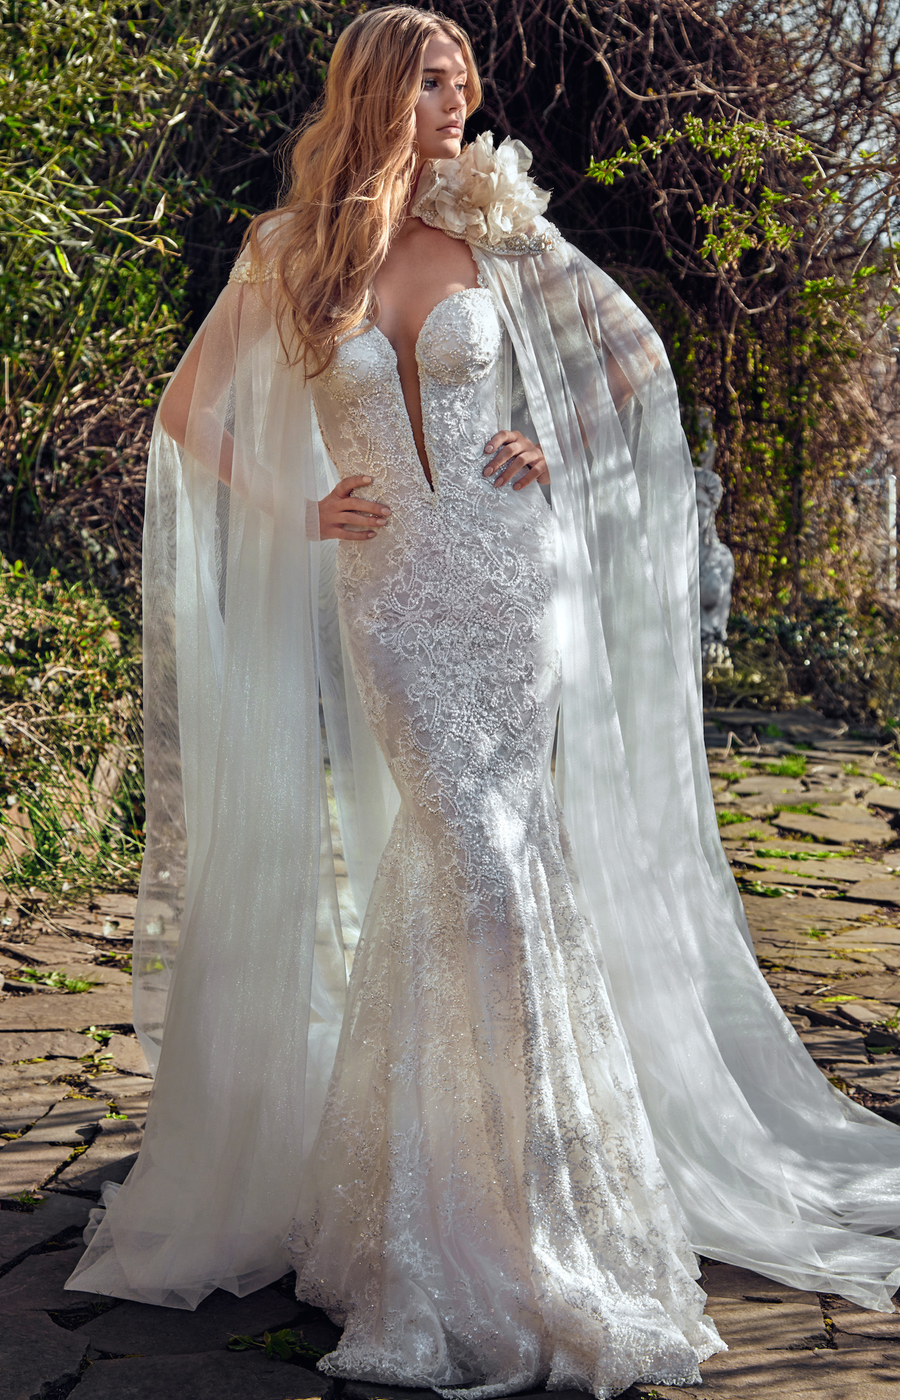 Galia Lahav Le Secret Royal Samantha